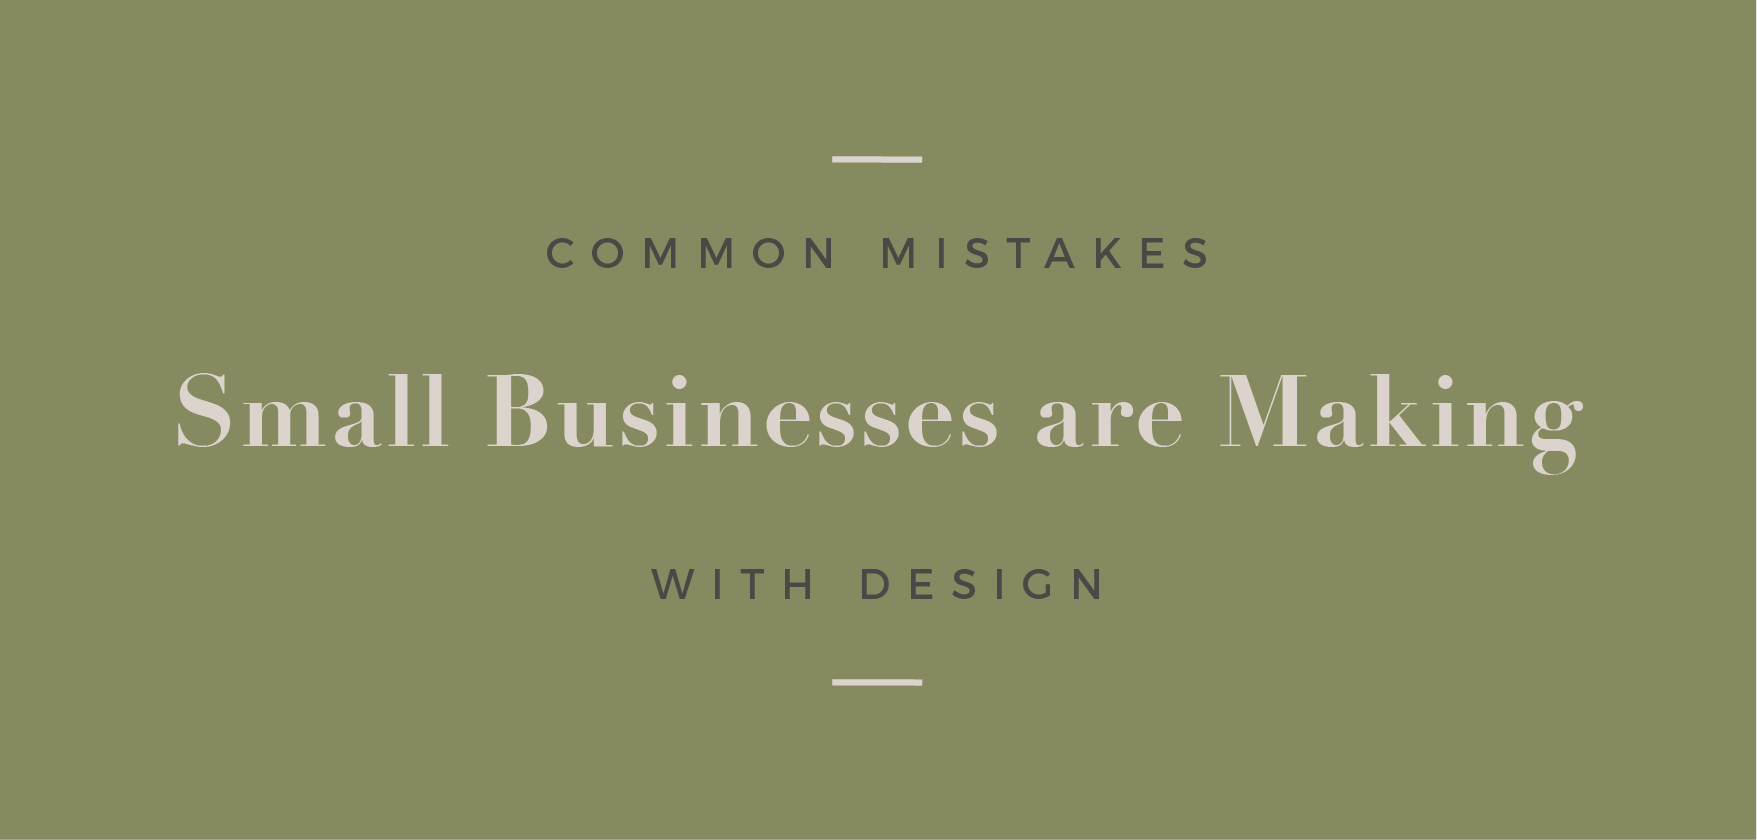 HBDesigns-Blogpost-CommonMistakesinDesign-SmallBusiness-Branding-Hierarchy.jpg